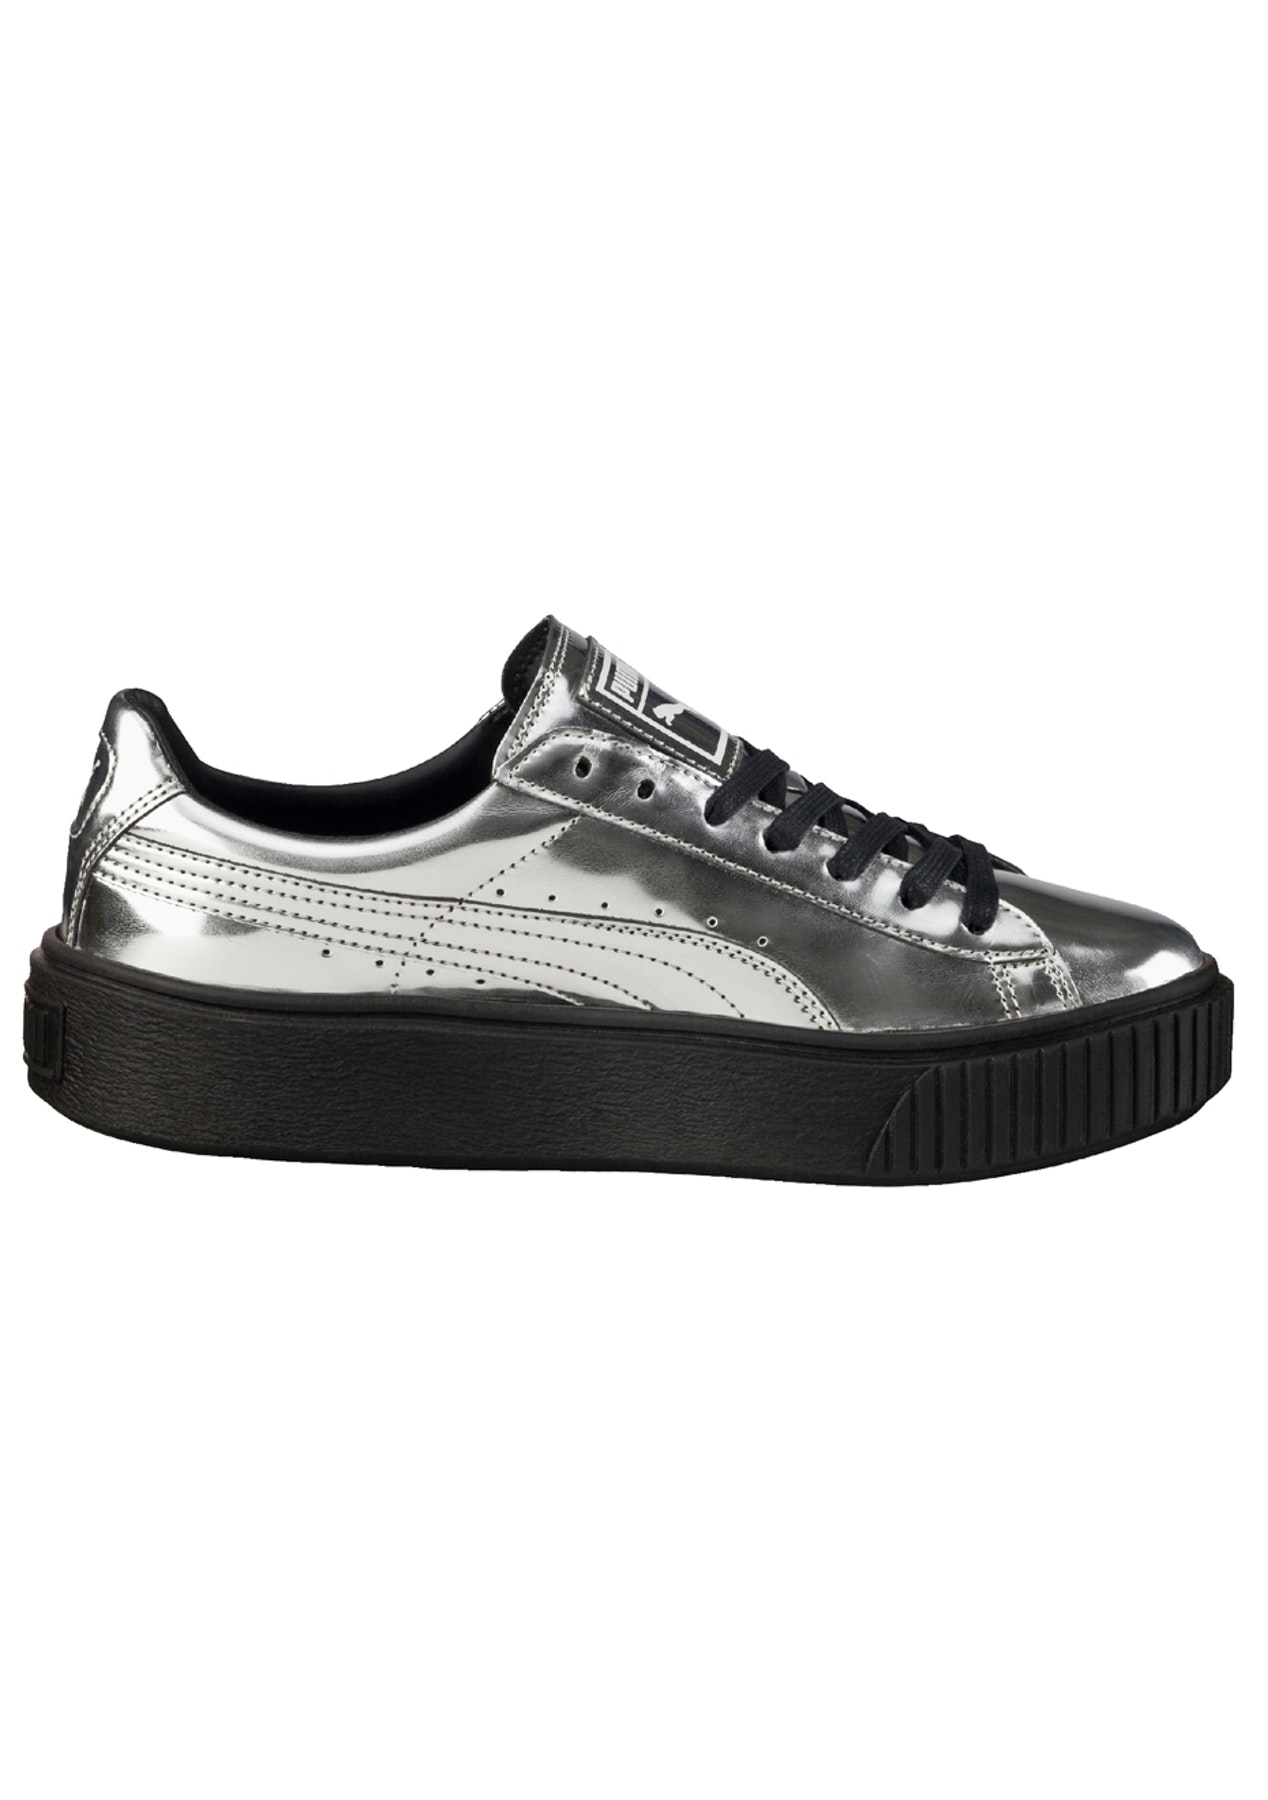 Puma Basket Creepers Metallic